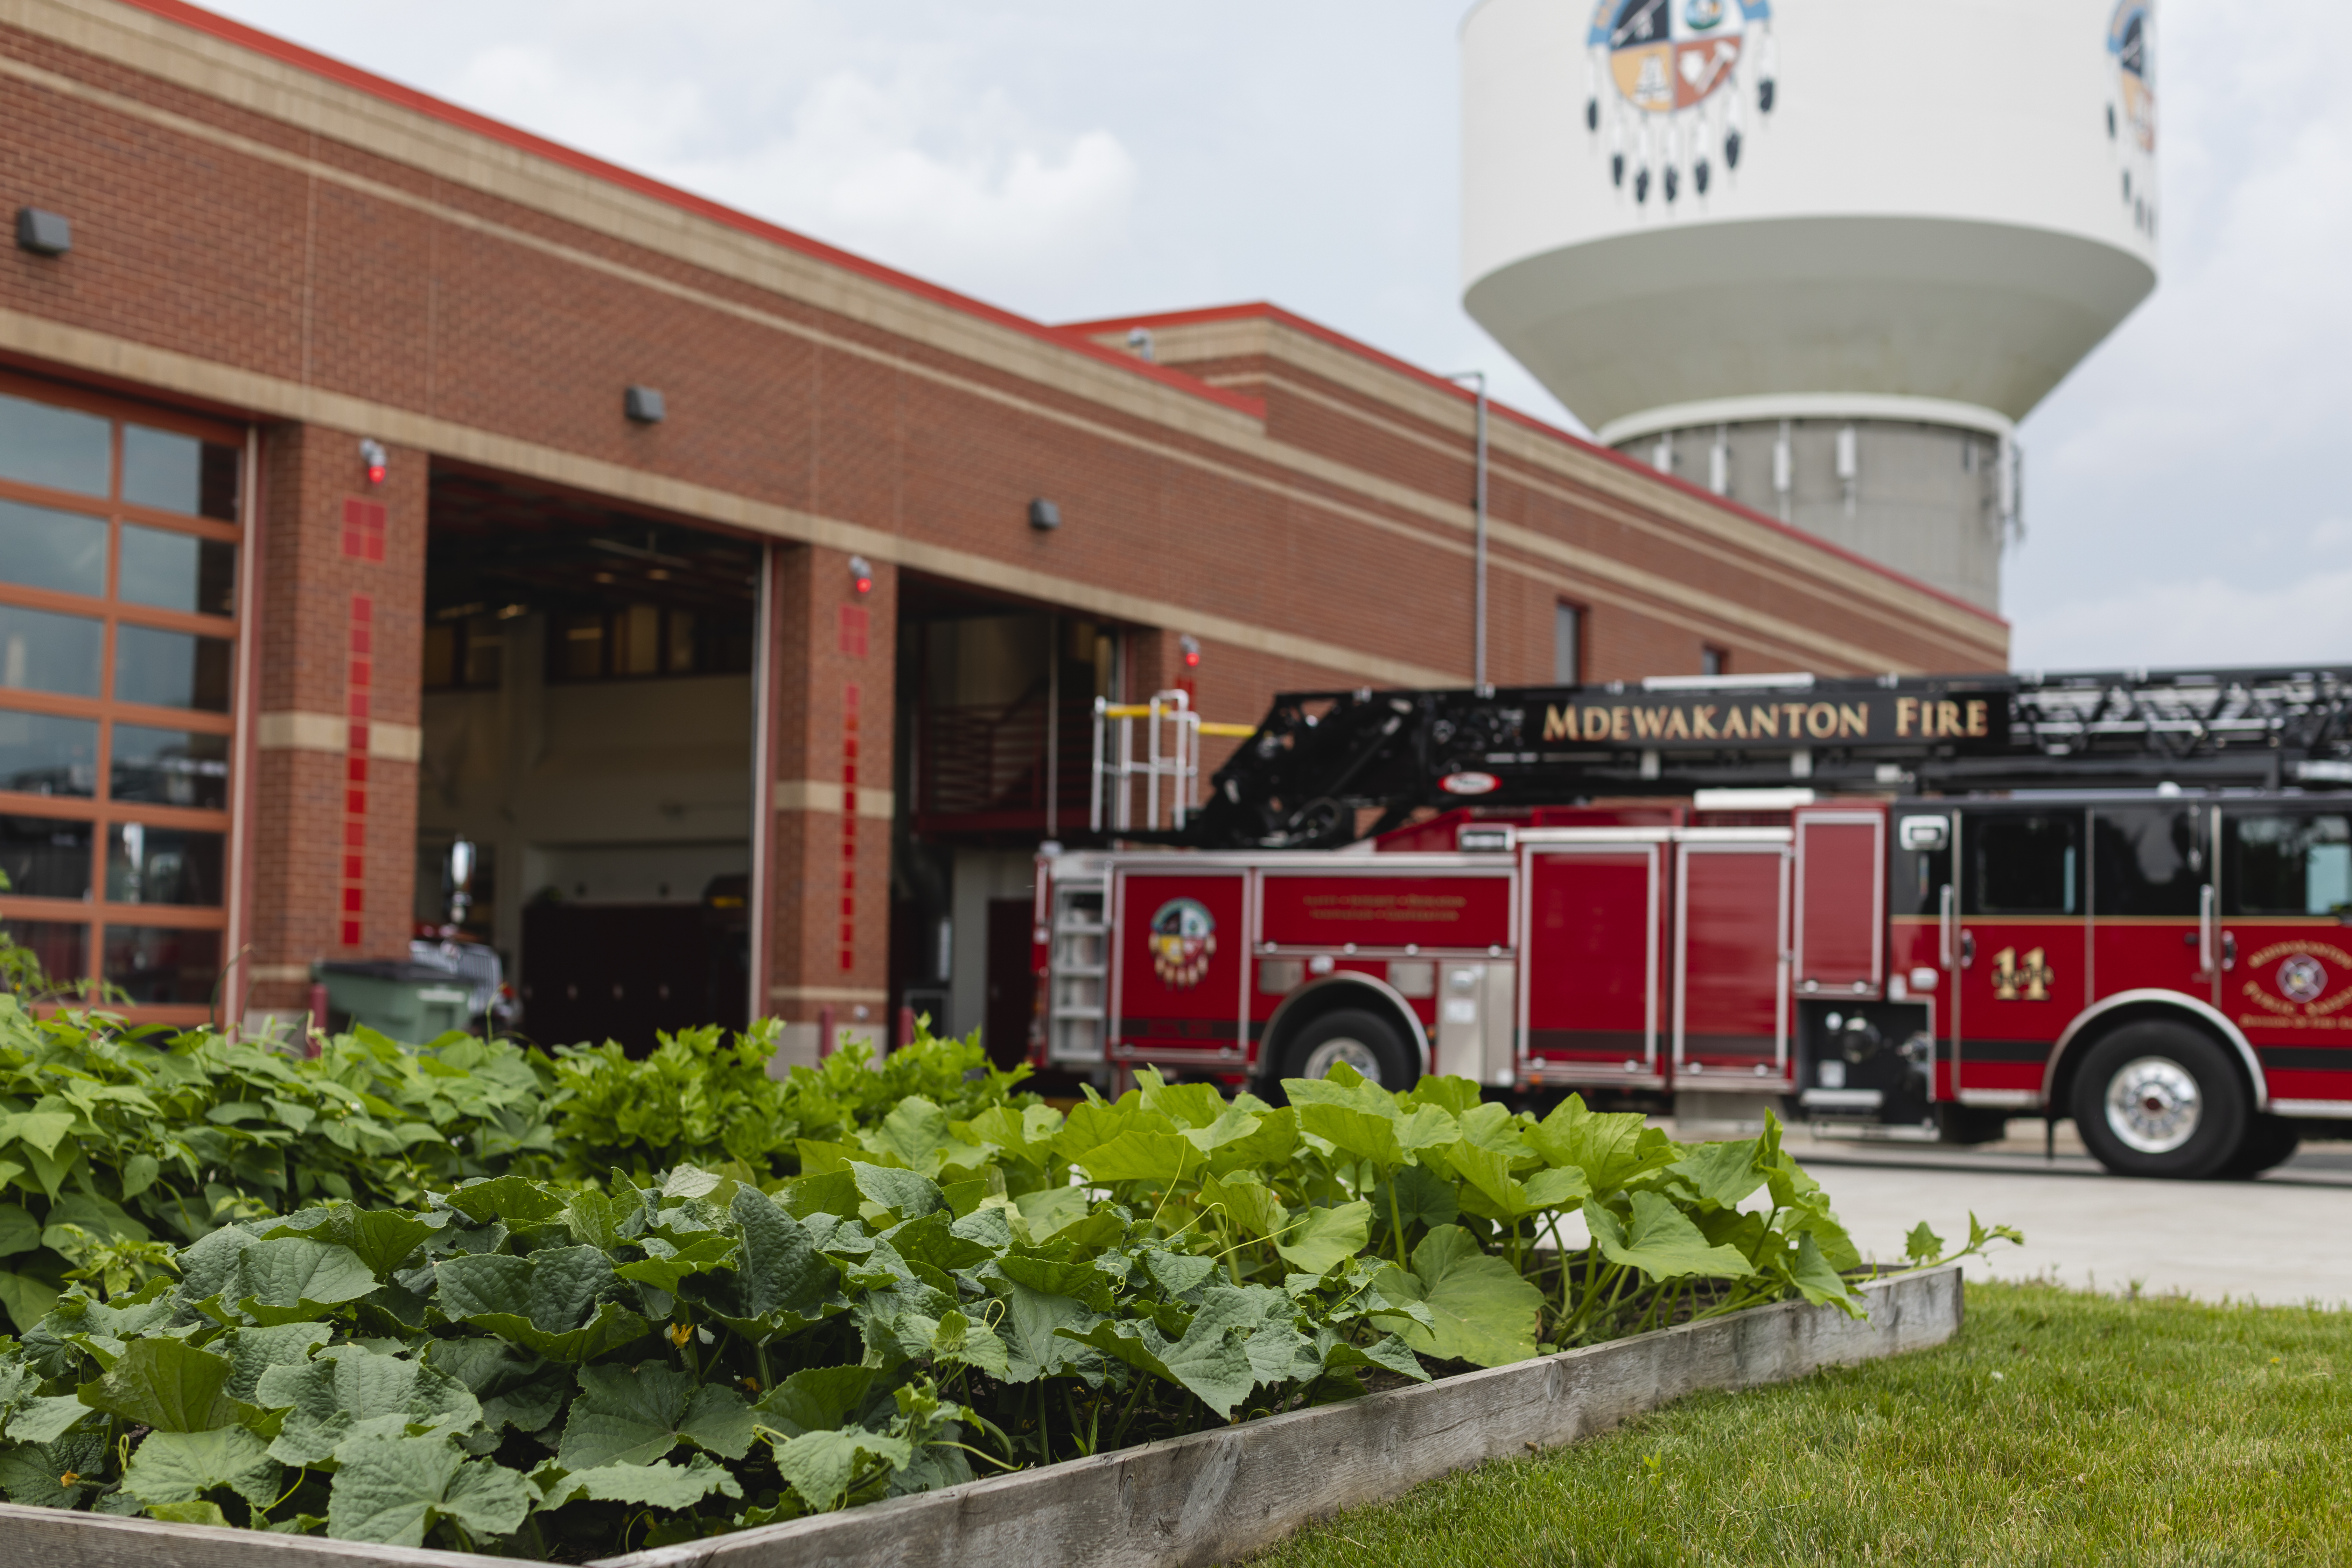 The garden at the Mdewakanton Public Safety station in Shakopee, Minnesota, supplies fresh vegetables for firehouse meals // Photo by Garrett Born